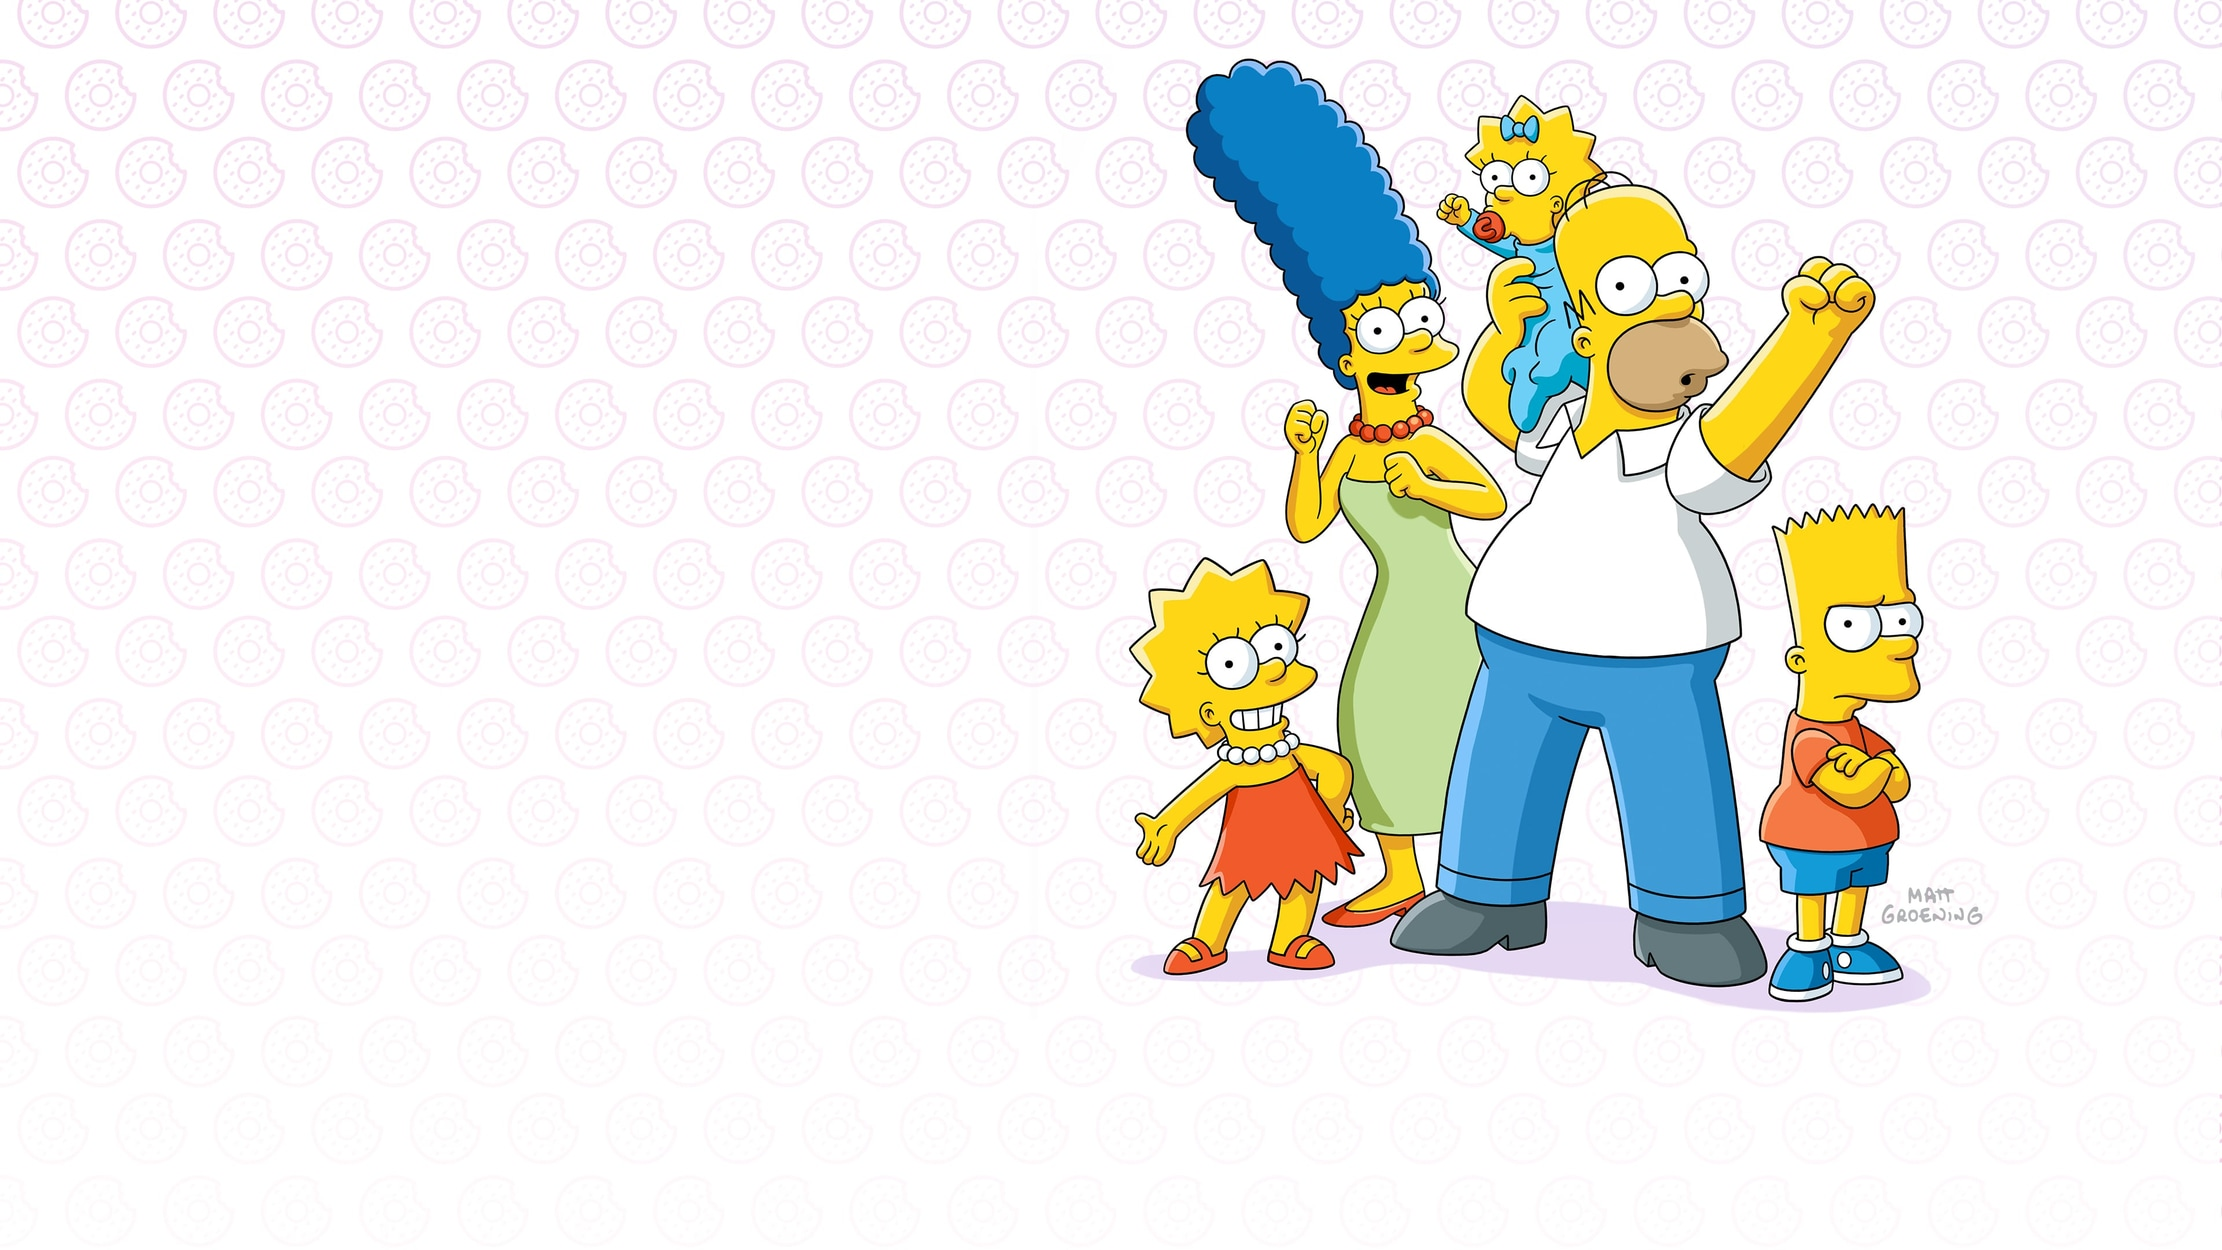 The Simpsons seriesDetail